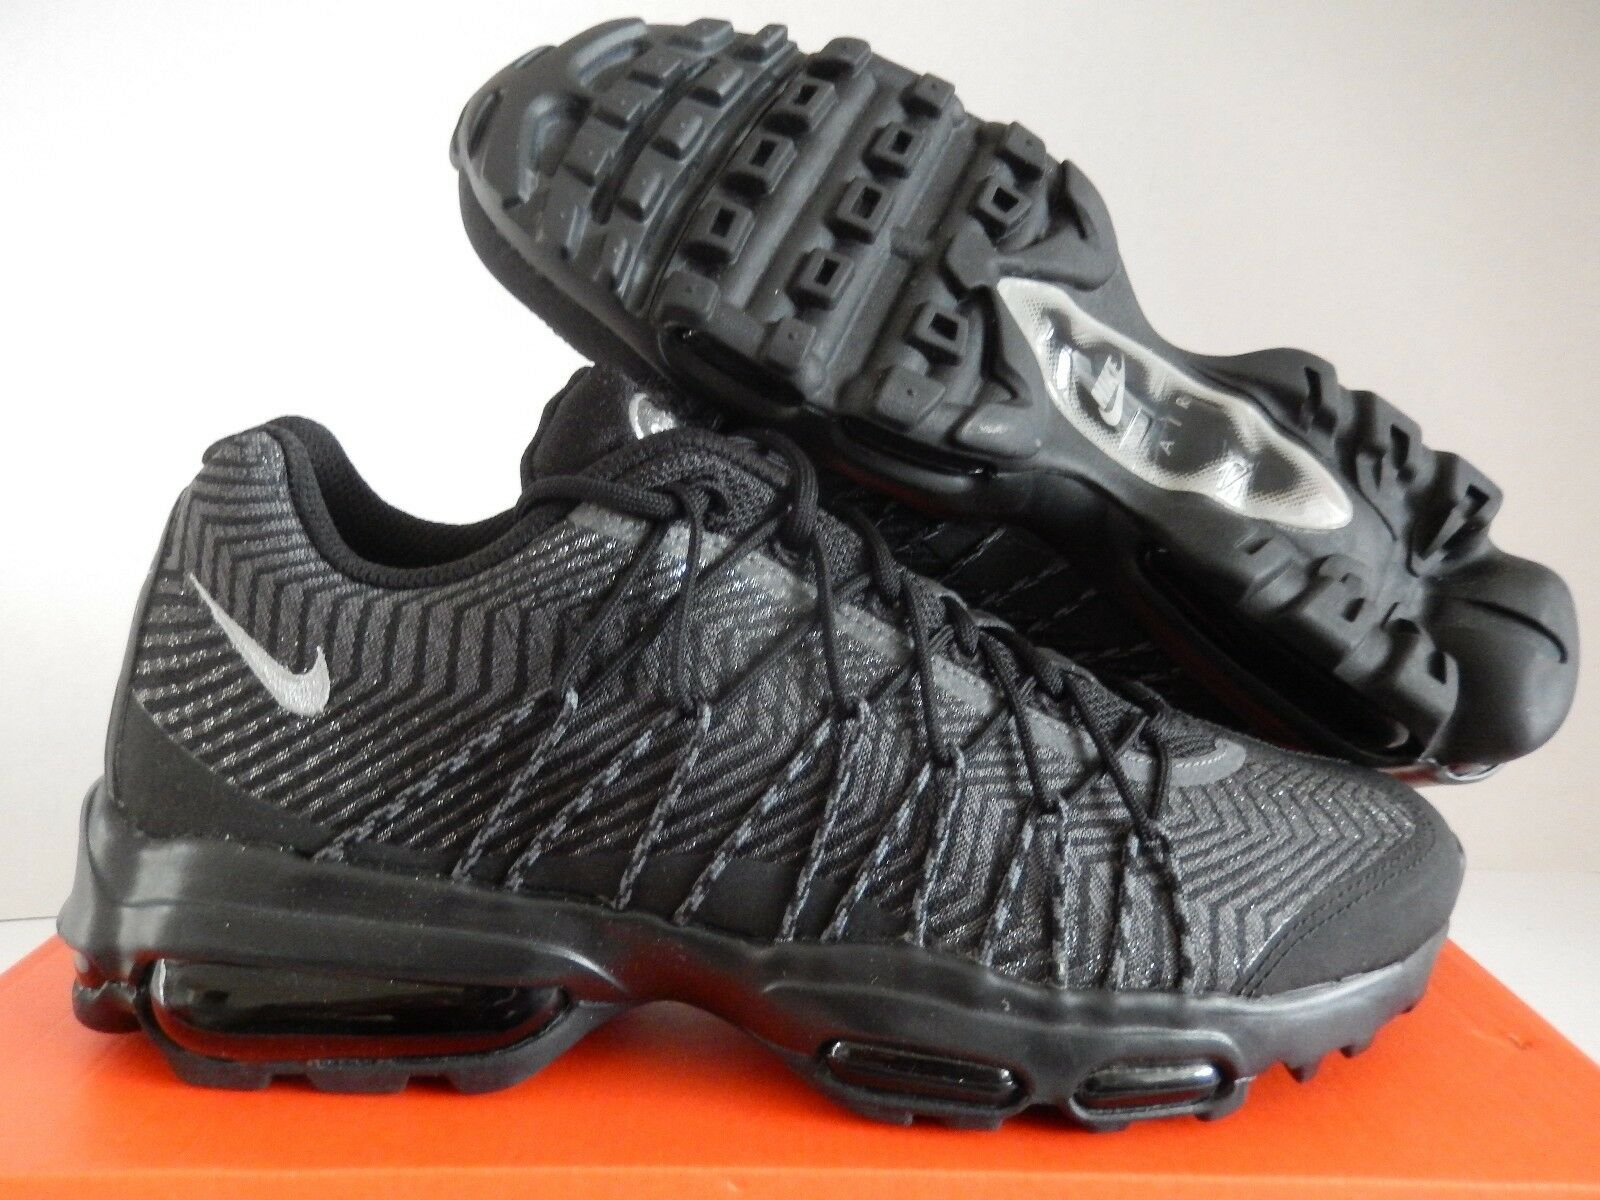 Details about NEW Sz 9 Men's Nike Air Max 95 Ultra Jacquard Black Silver 749771 001